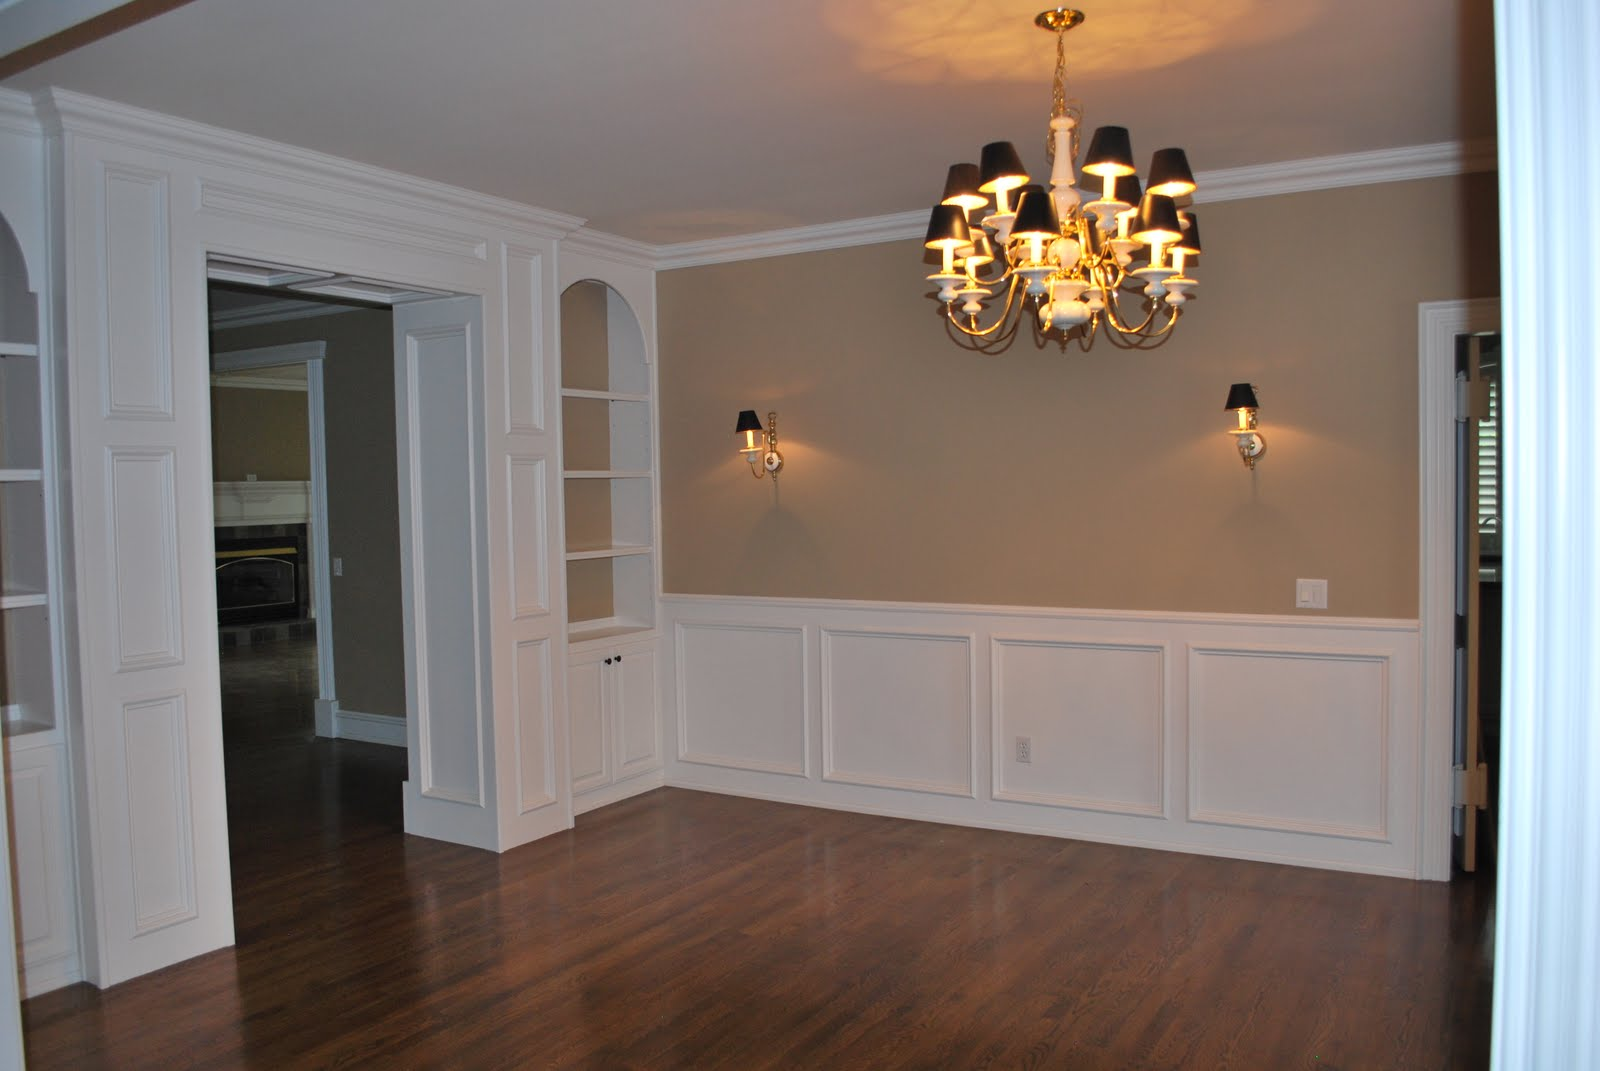 Sherwin Williams Bungalow Beige Pictures To Pin On